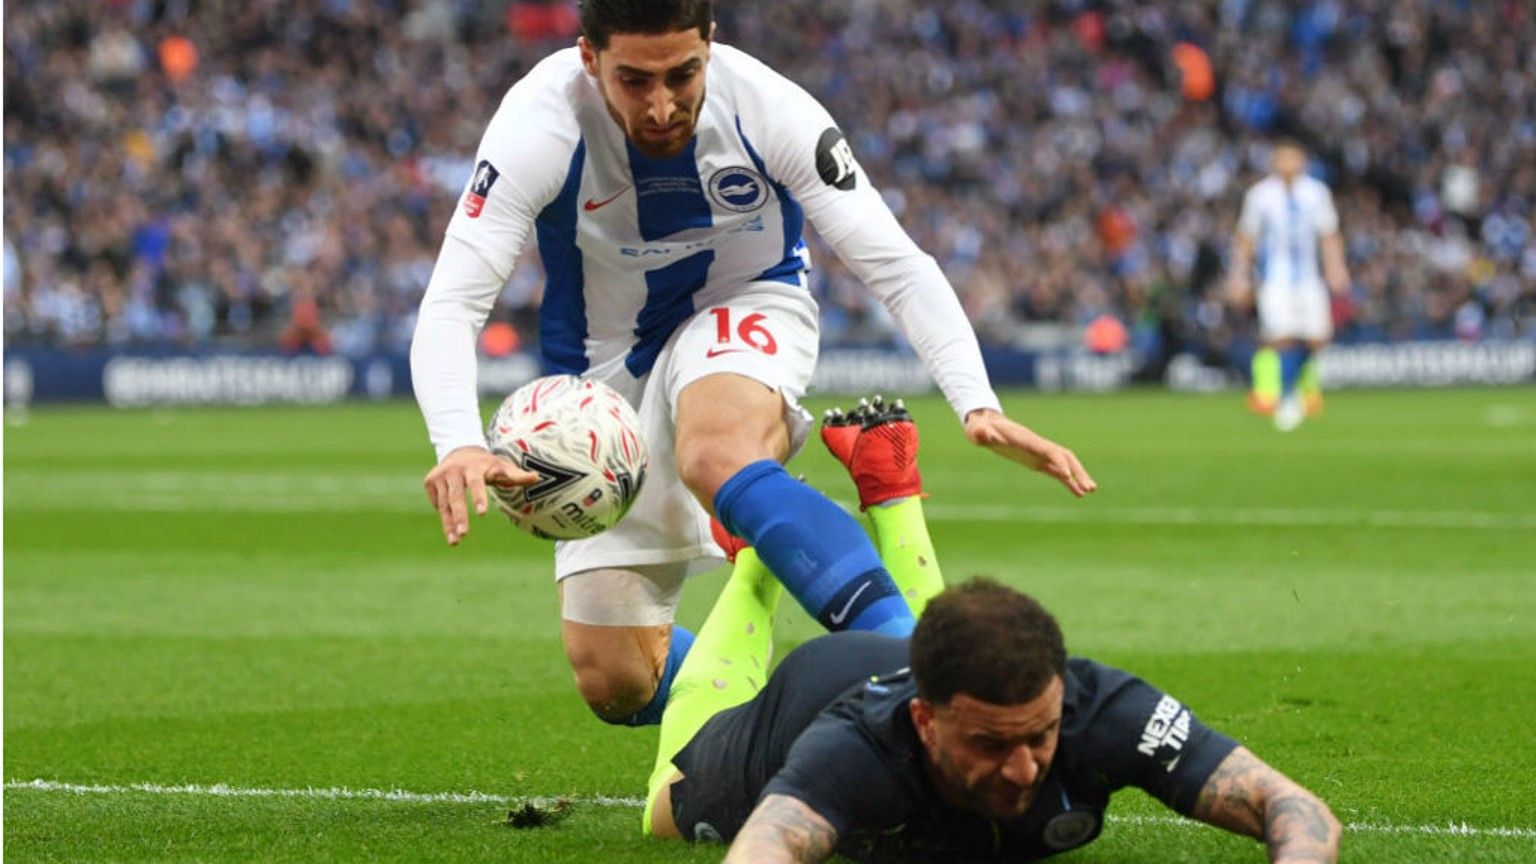 FLASHPOINT: Kyle Walker is sent crashing by Alireza Jahanbakhsh -an incident that sparked a melee which saw both players booked